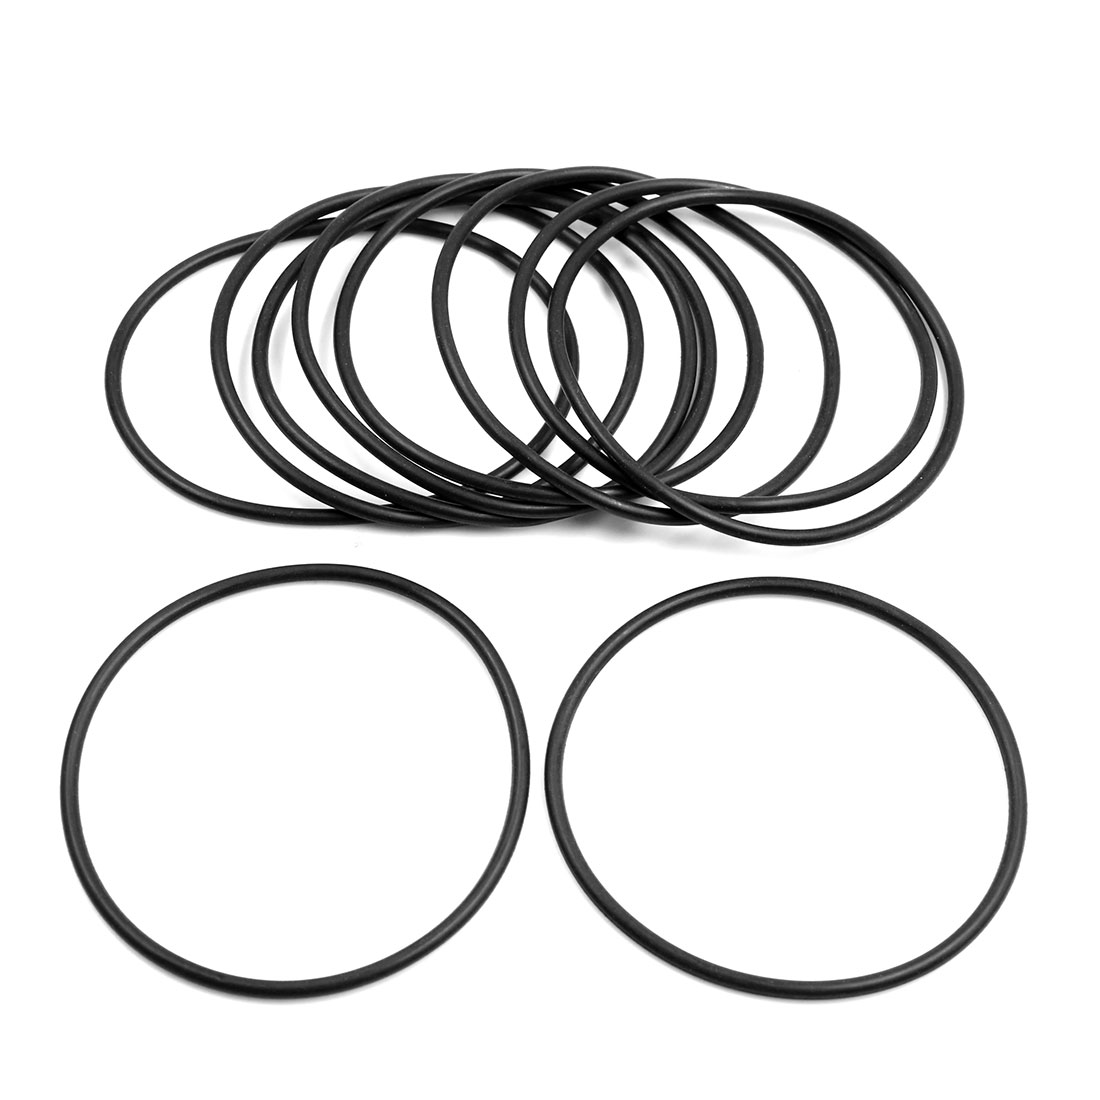 10pcs Black Universal Nitrile Rubber O-Ring Seals Gasket for Car 85 x 3.55mm